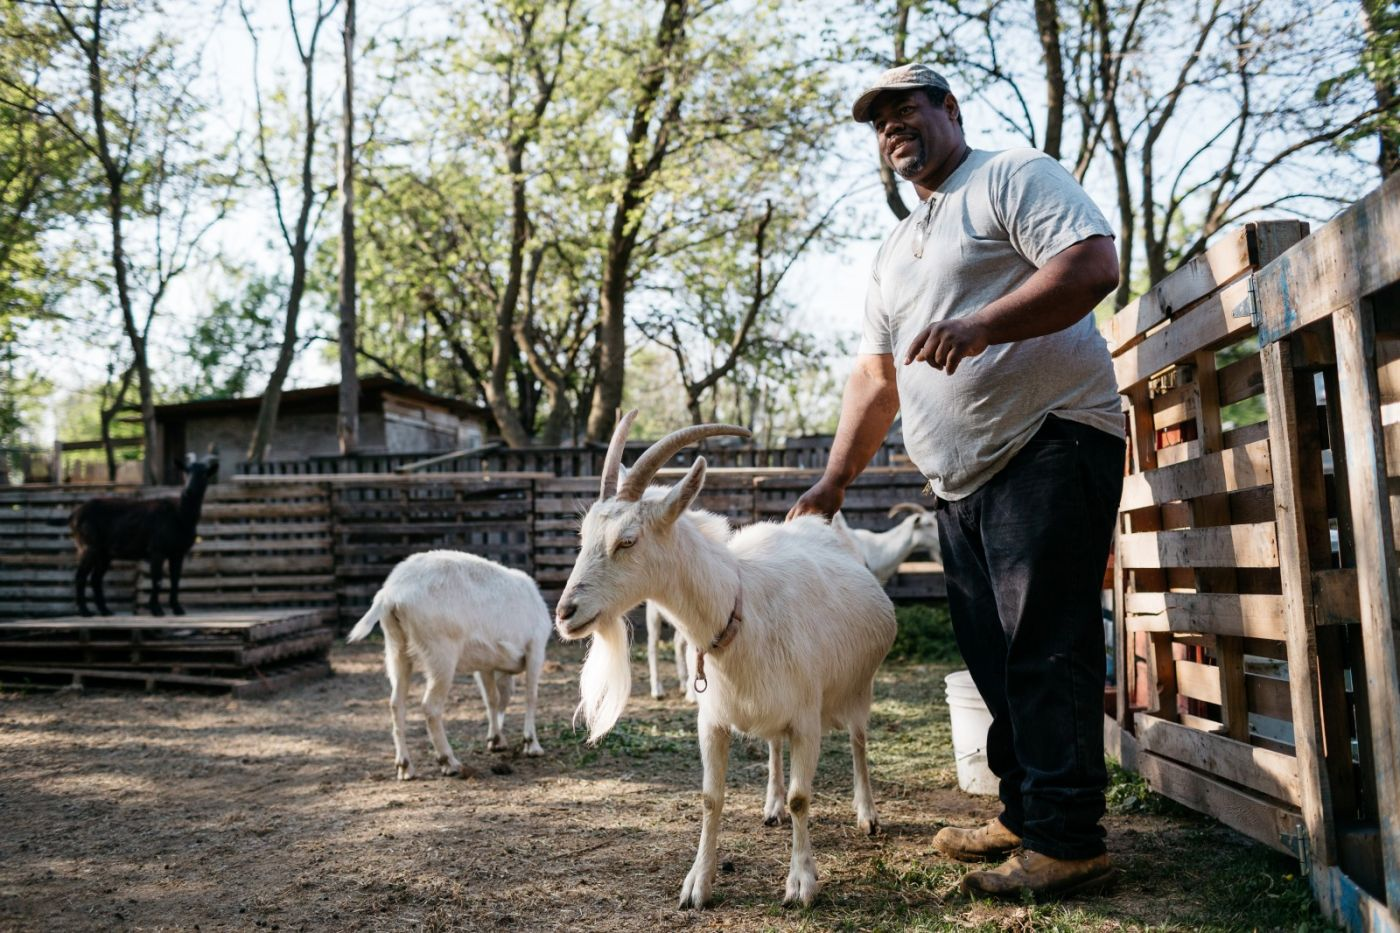 Detroit Is Designing a City With Space for Everyone, Including Goats